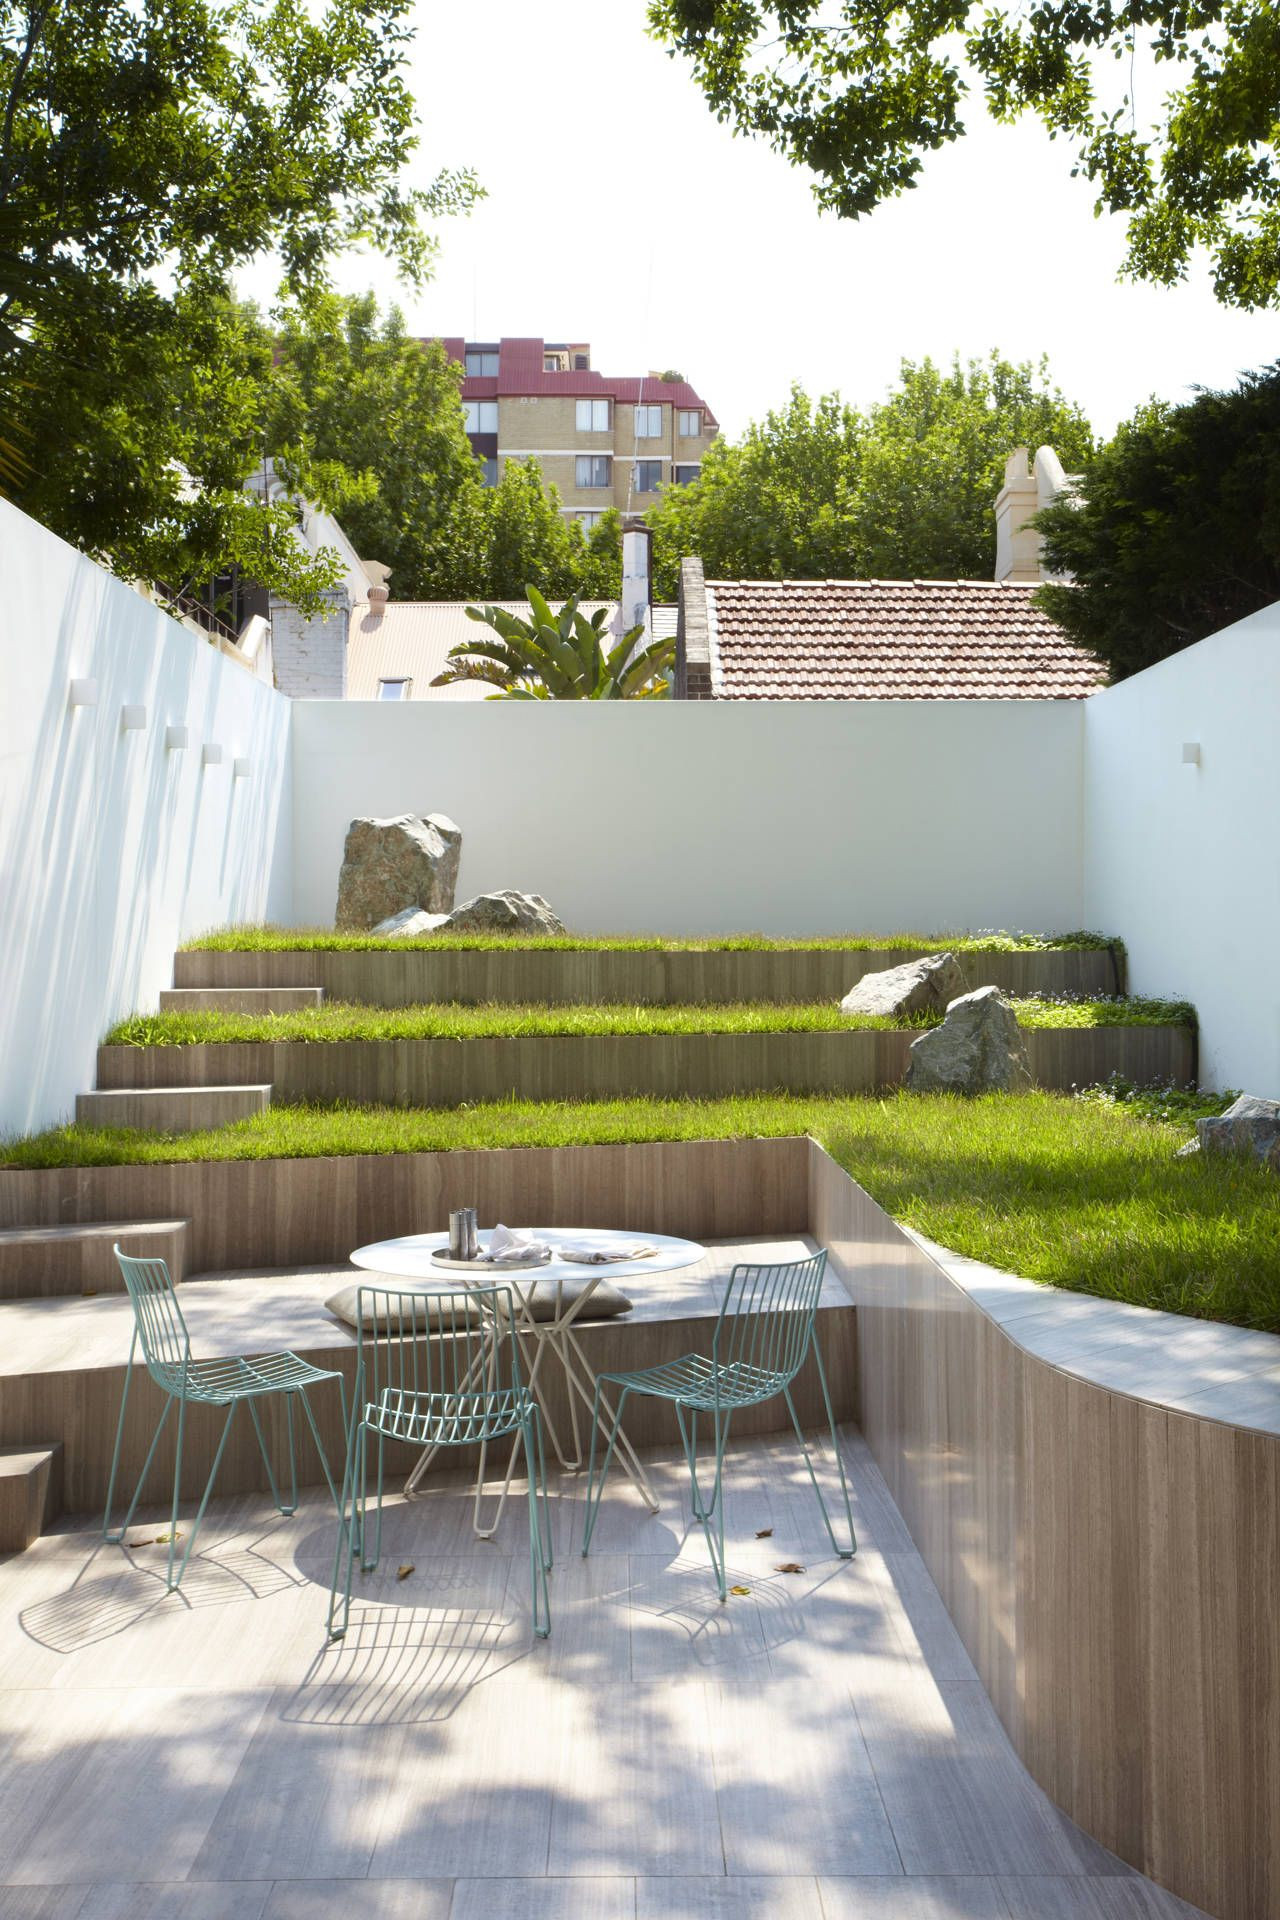 Terrace Landscape Architecture  Terraced Gardens How To Take Beauty To The Next Level